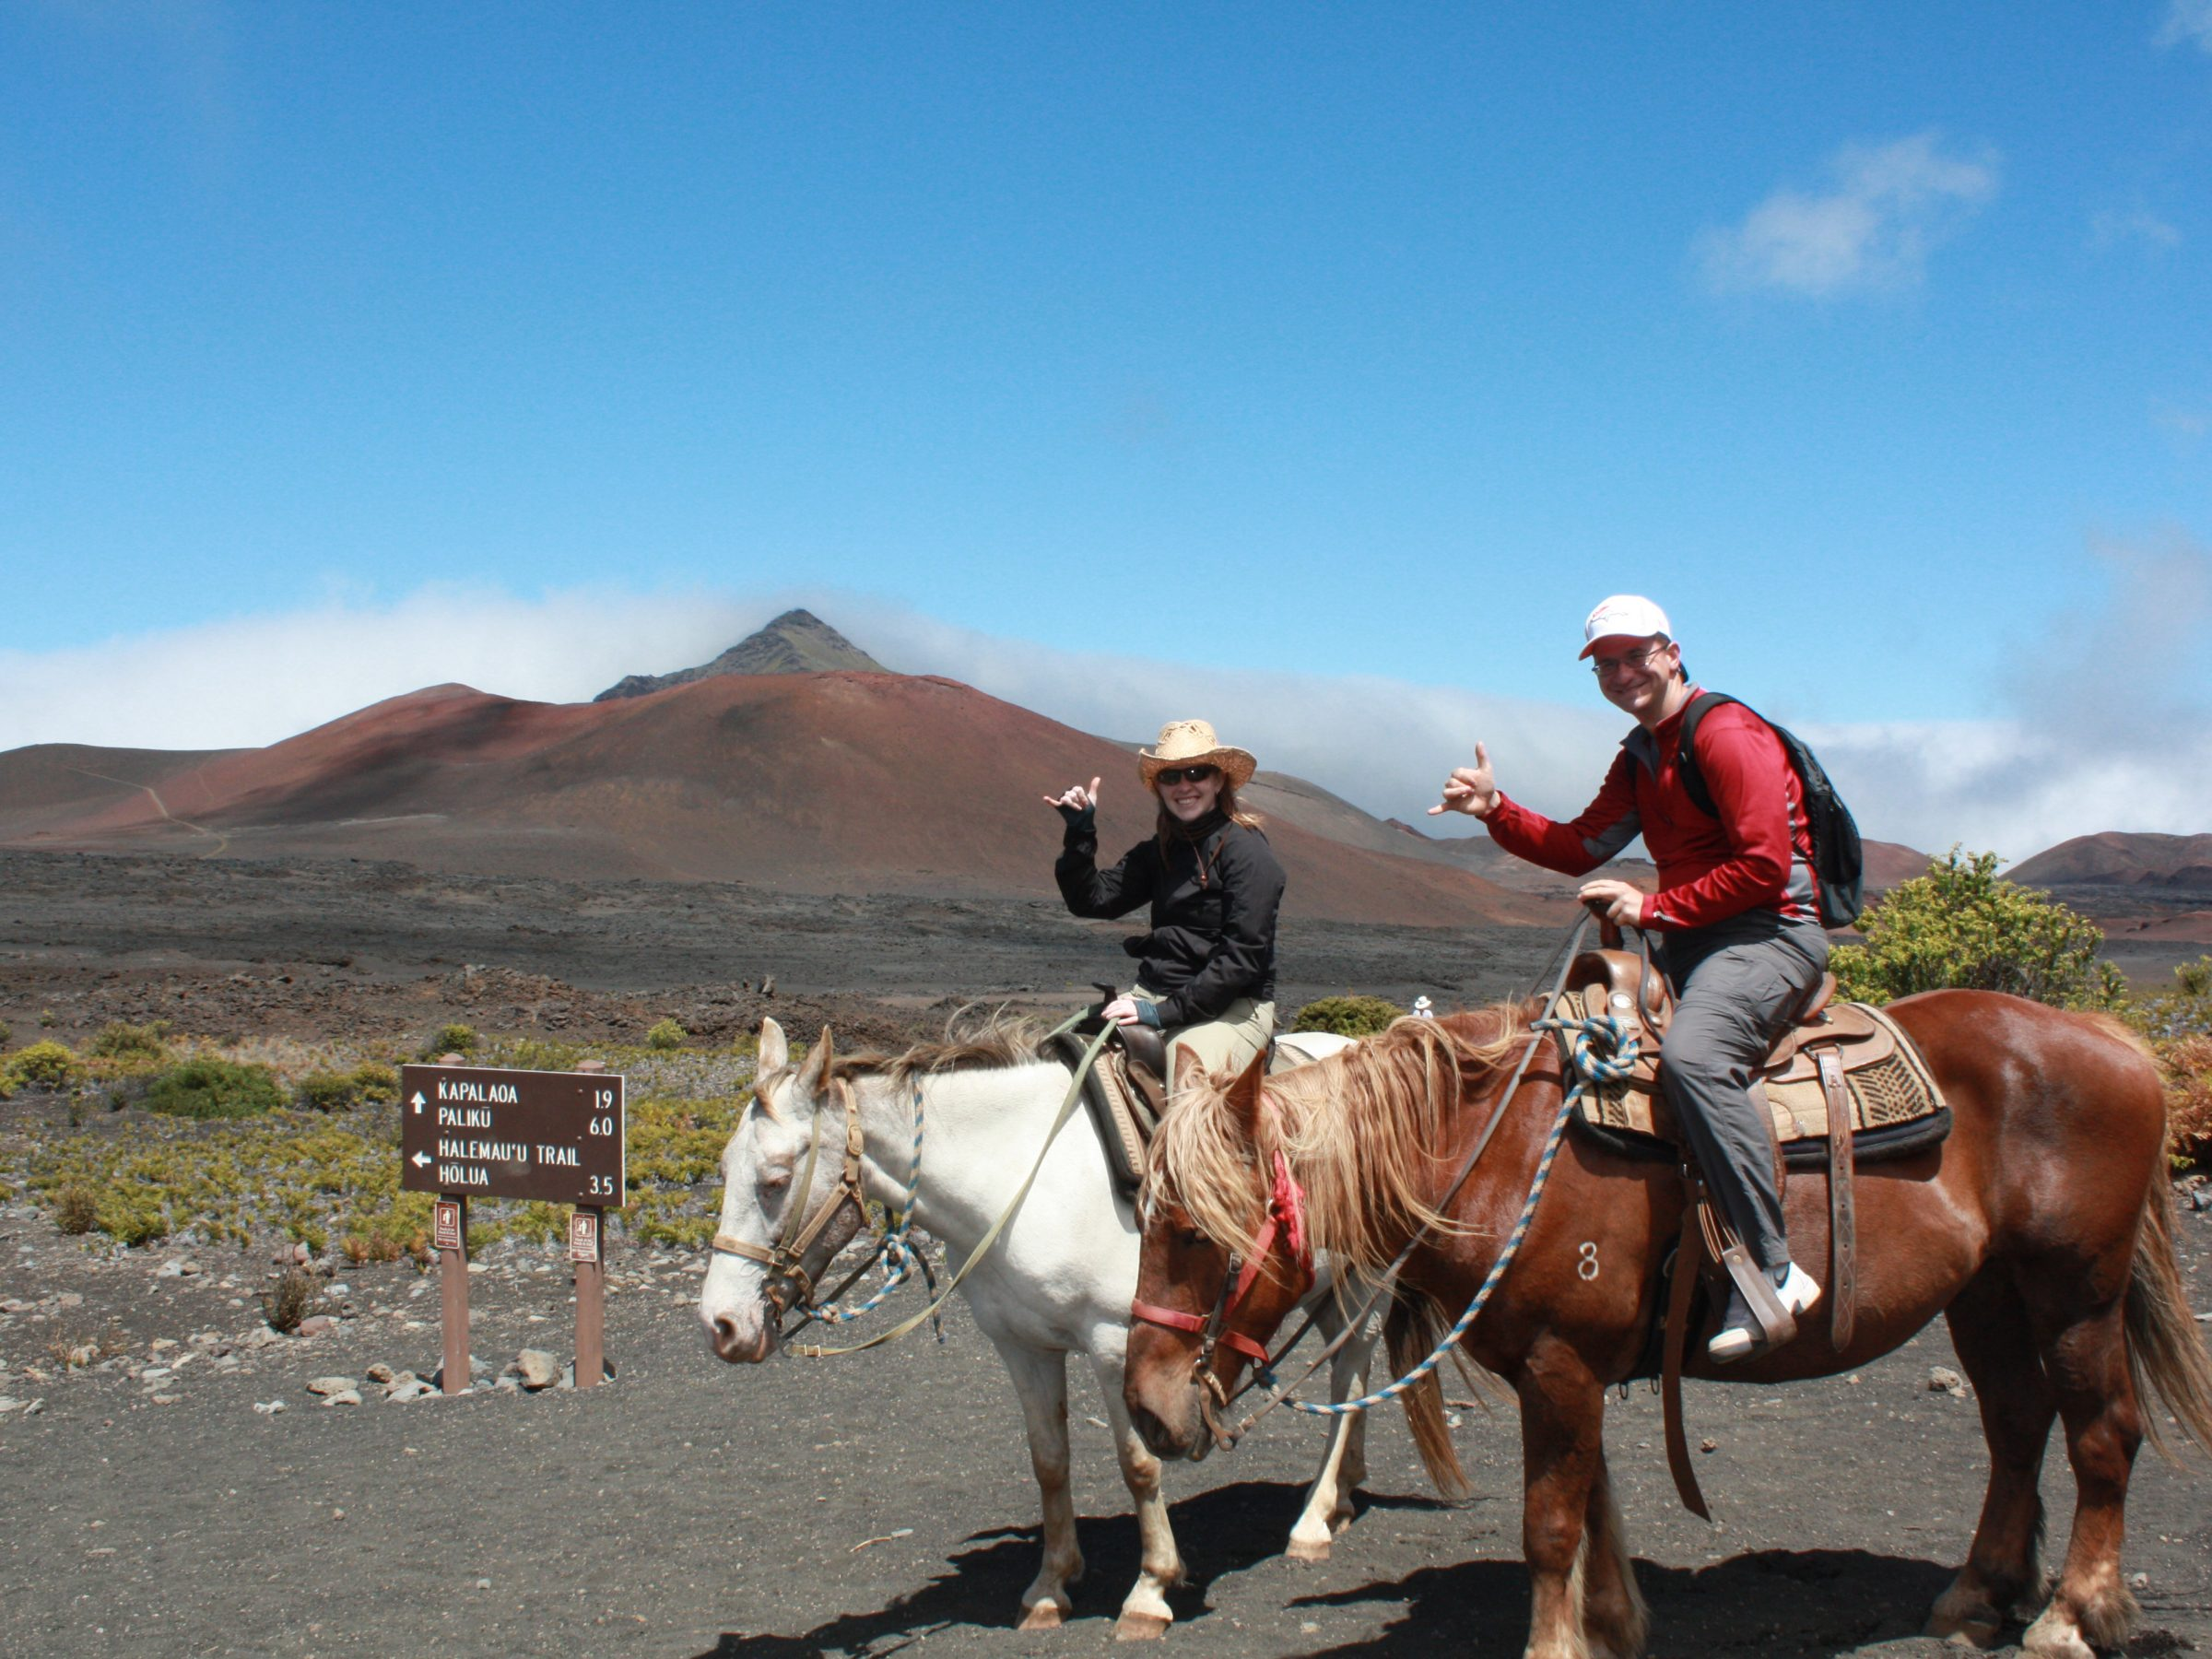 On horses at the bottom of Haleakala's crater.